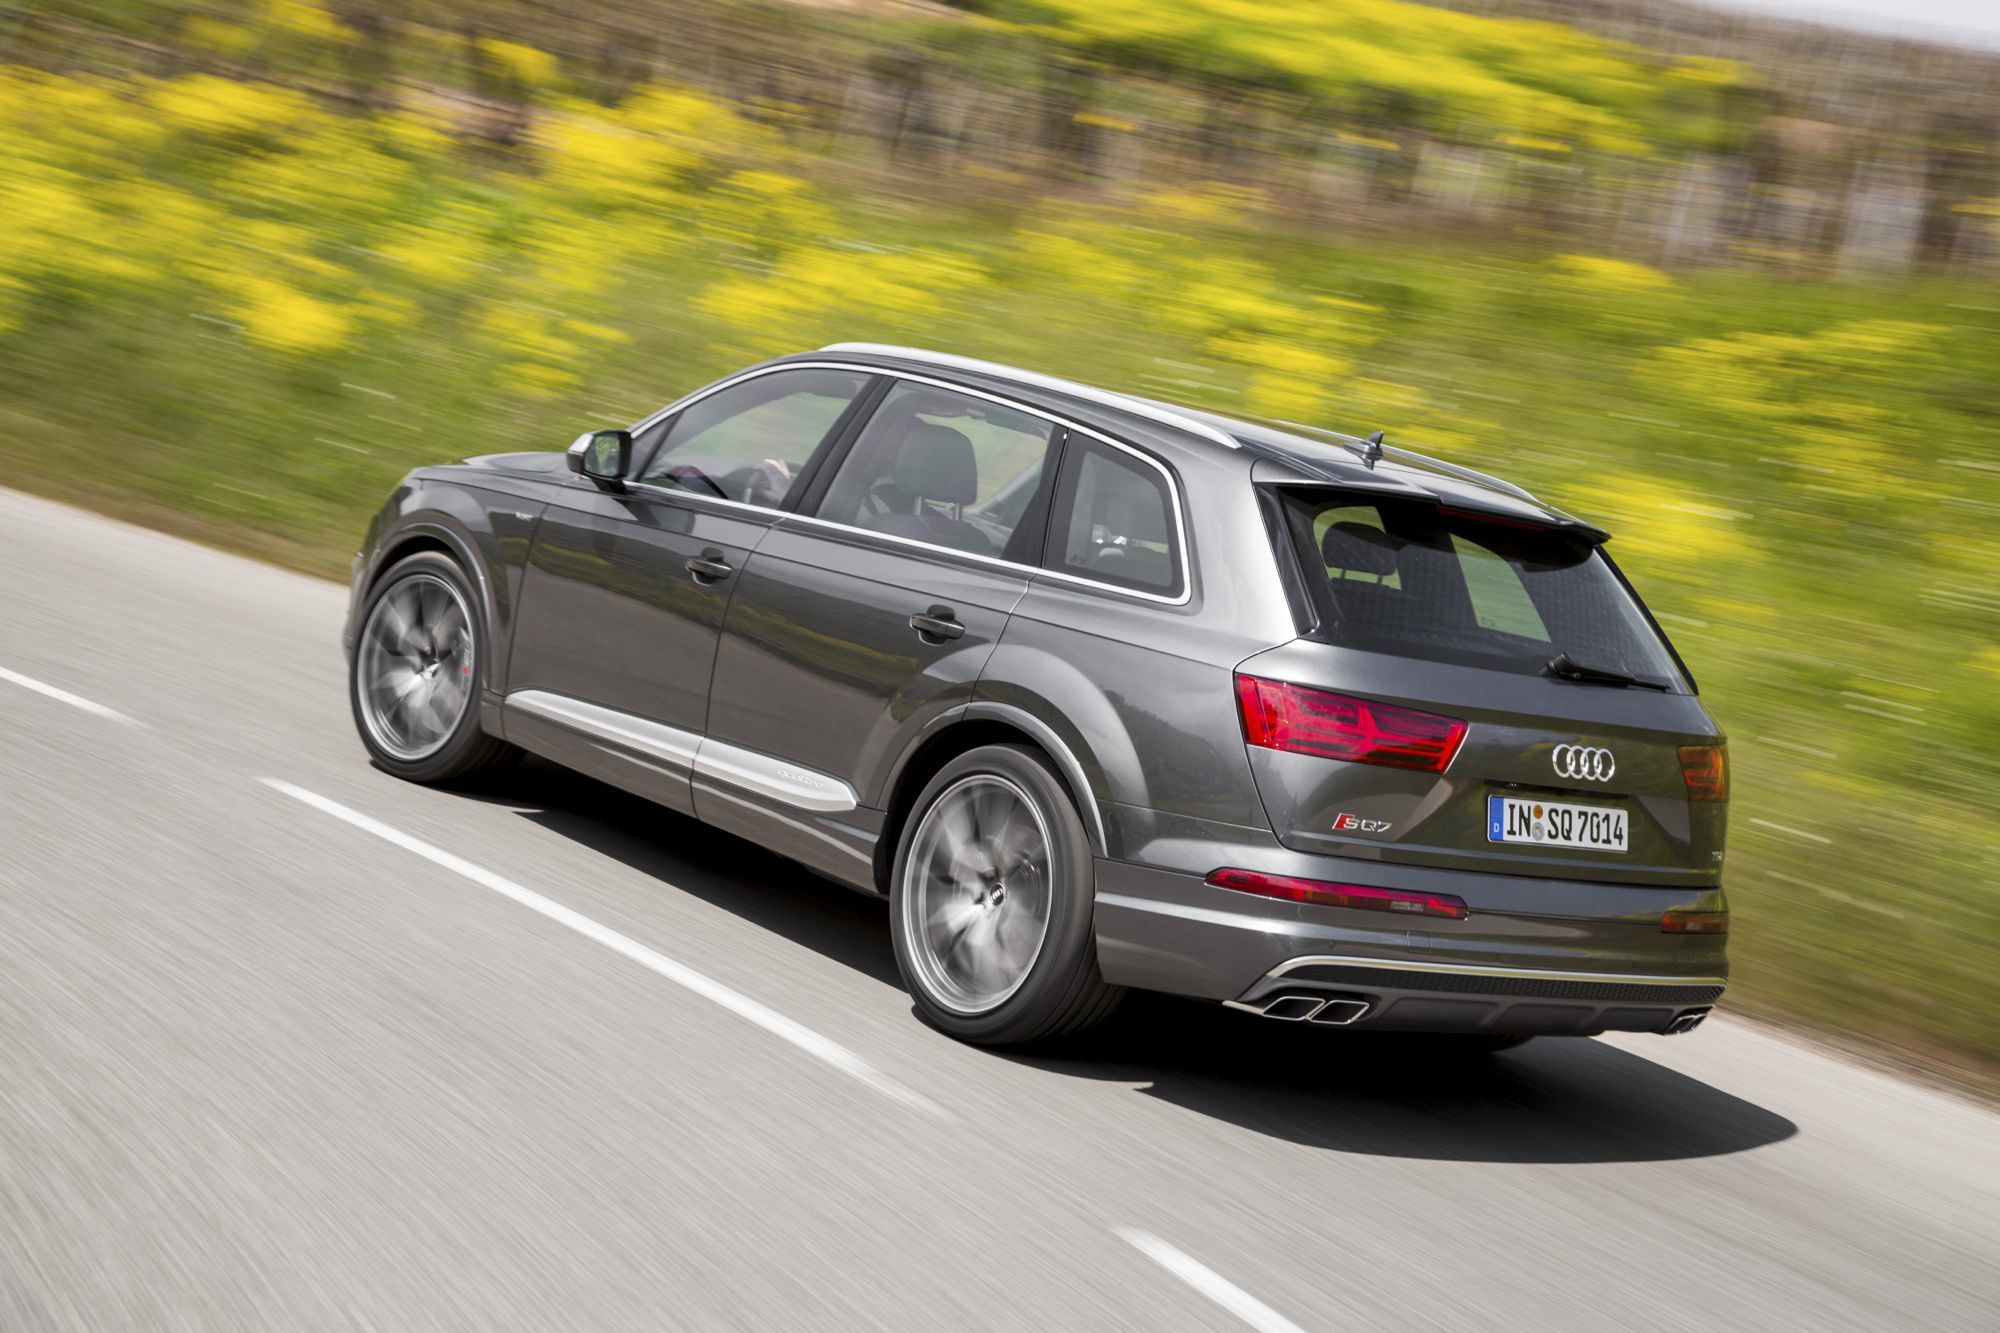 2016 Audi Q5 >> 2017 Audi SQ7 Review | CarAdvice